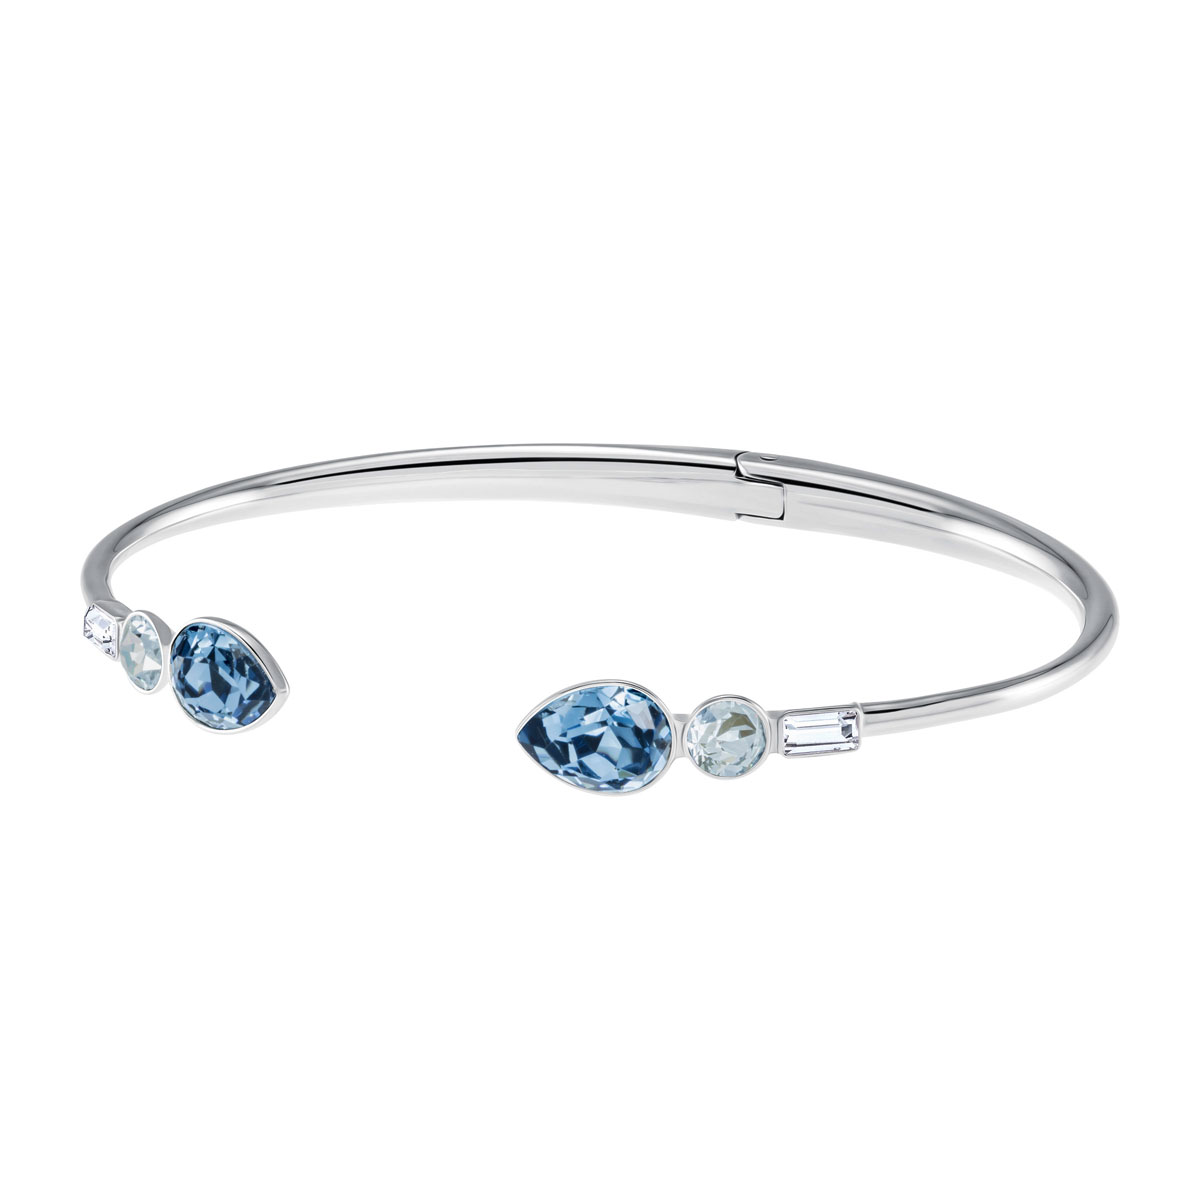 Swarovski Mix and Match Bangle, Multi Colored, Stainless steel